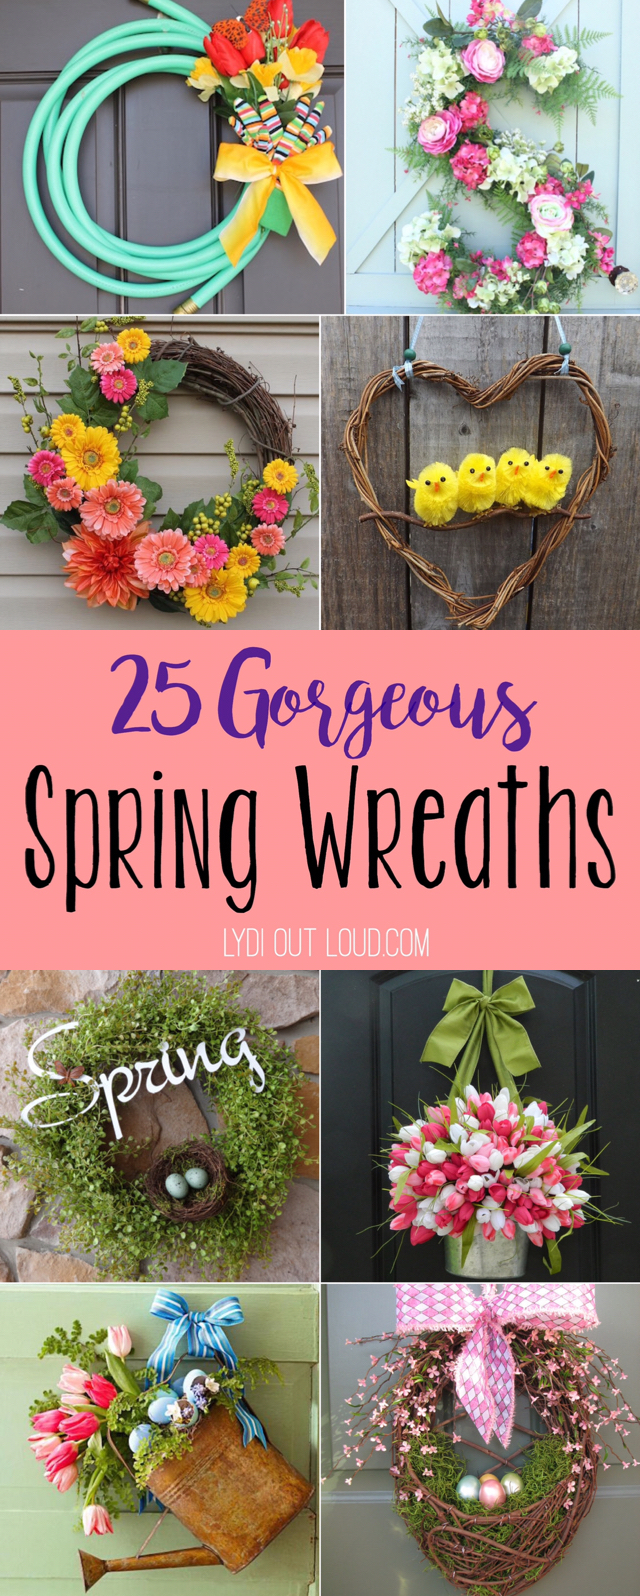 25 Cheery Spring Wreaths Lydi Out Loud